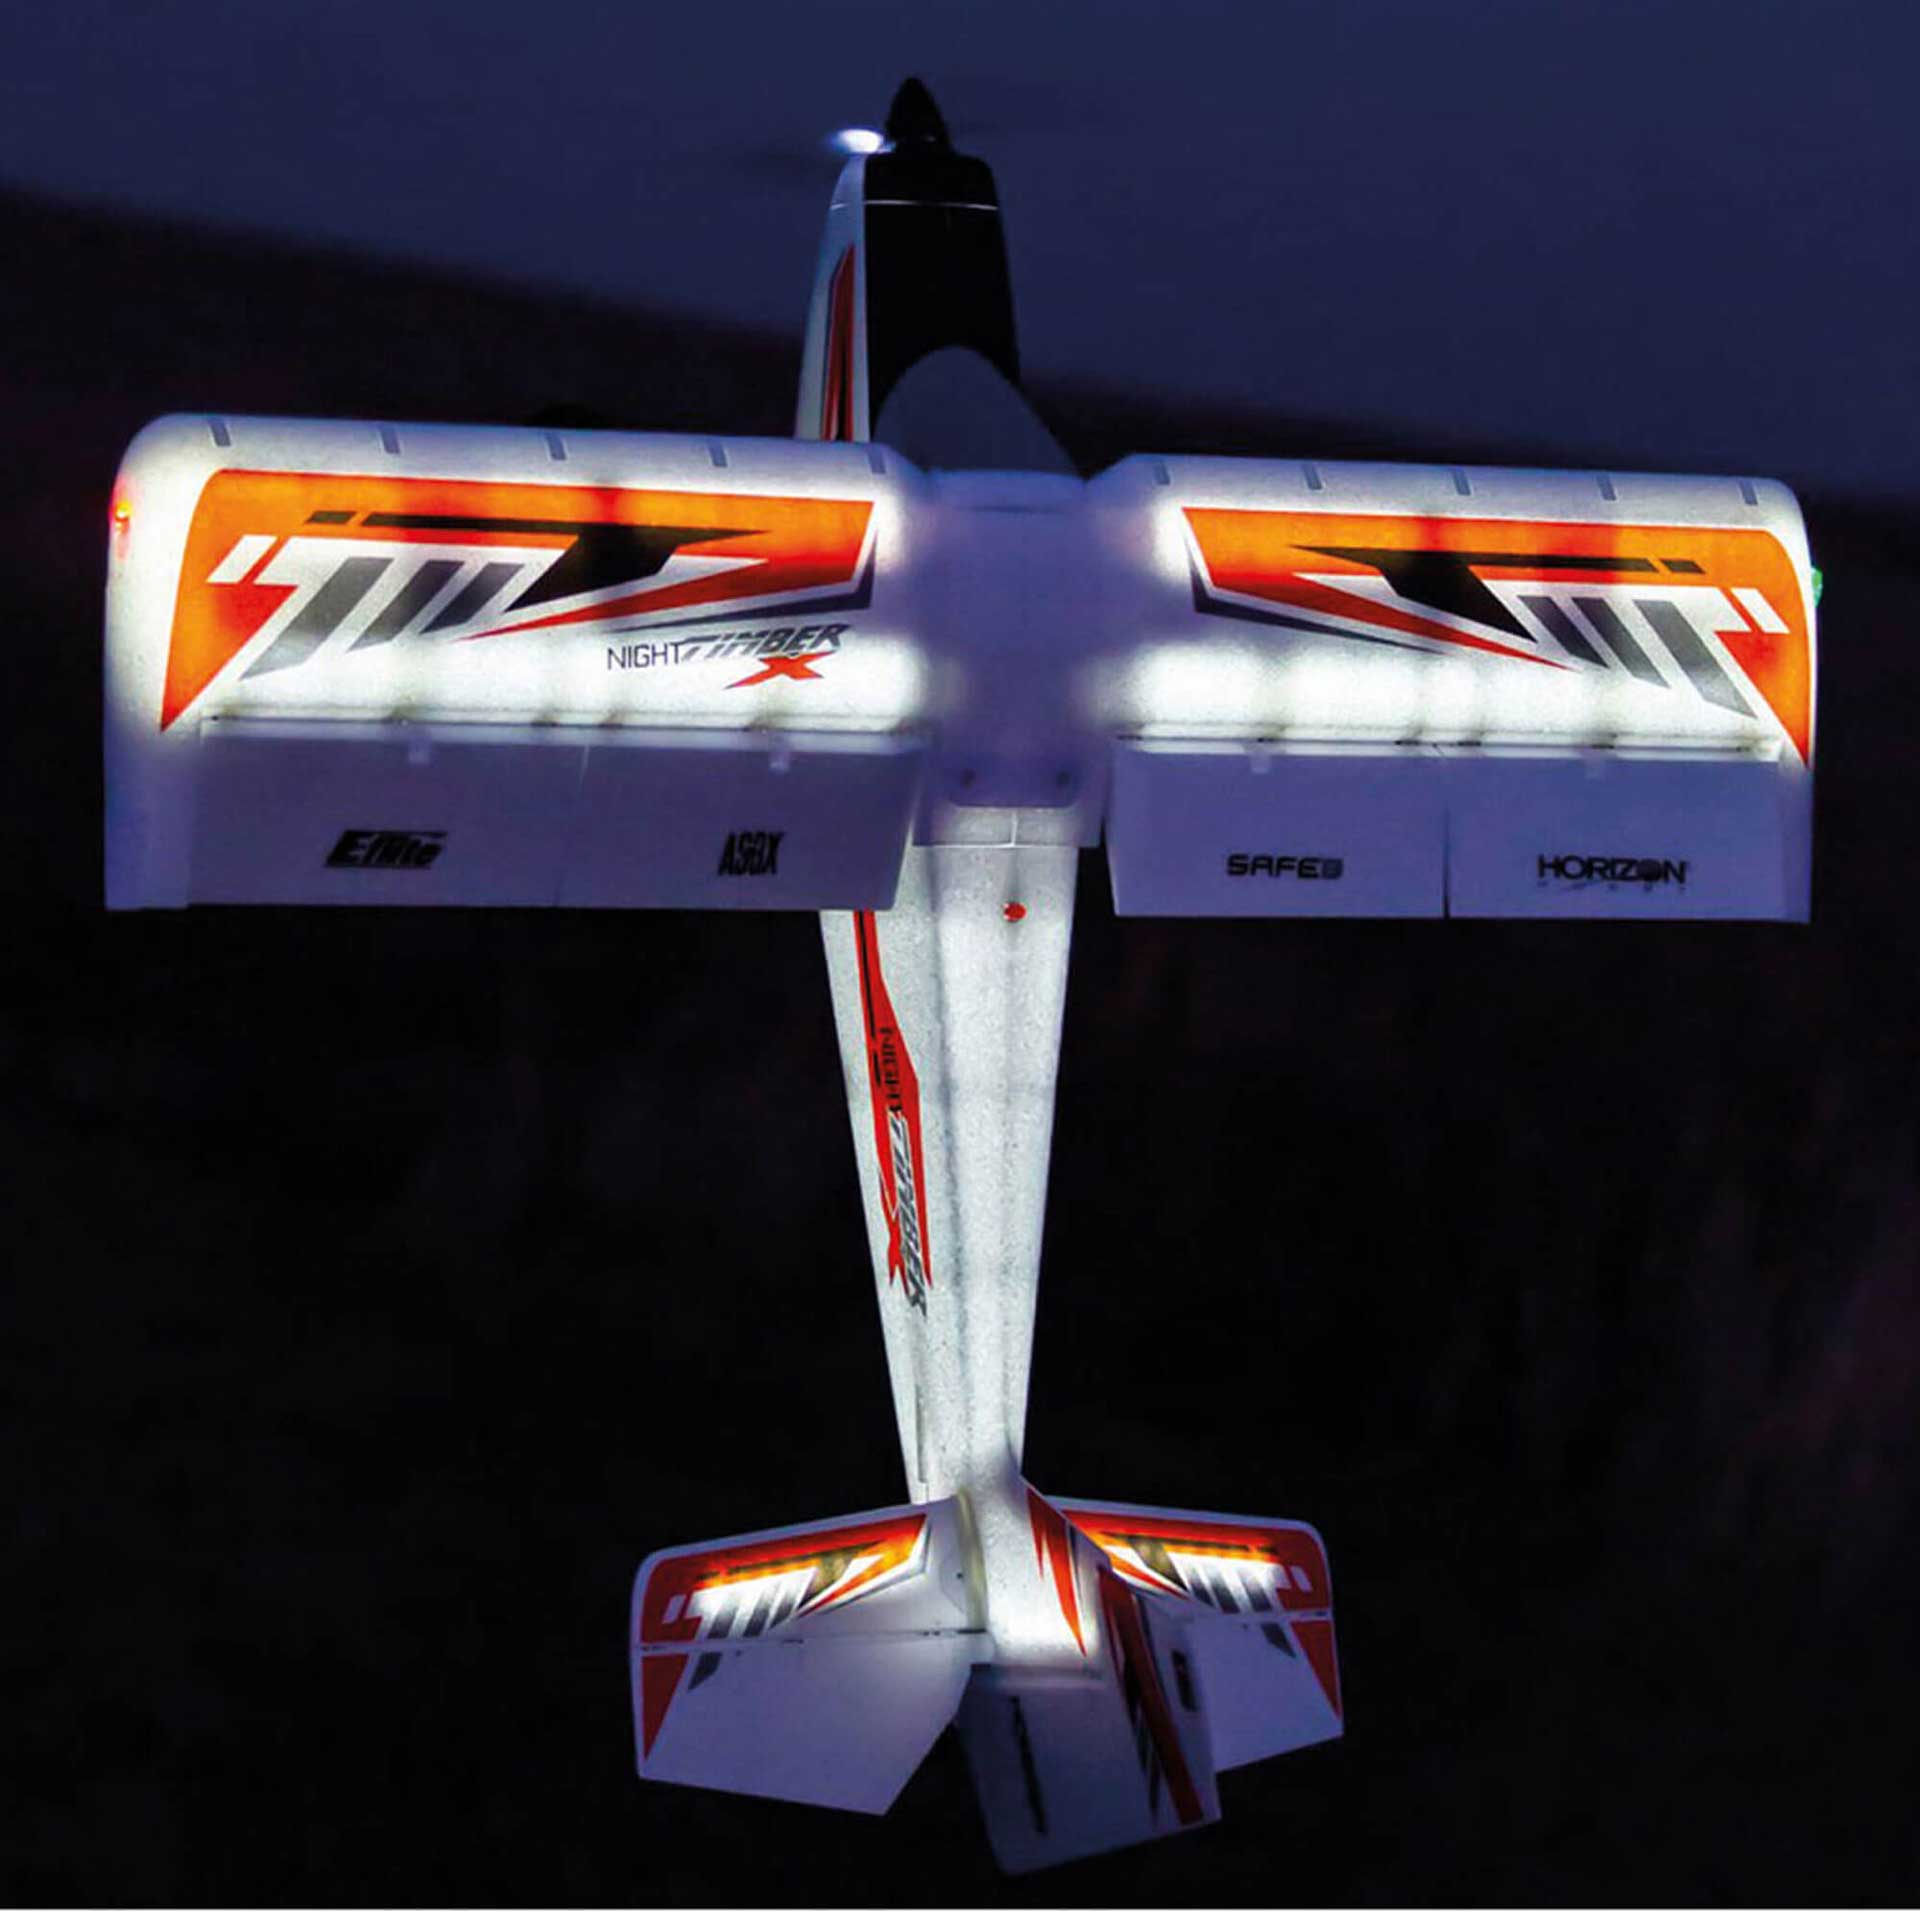 E-Flite Night Timber X 1.2M PNP